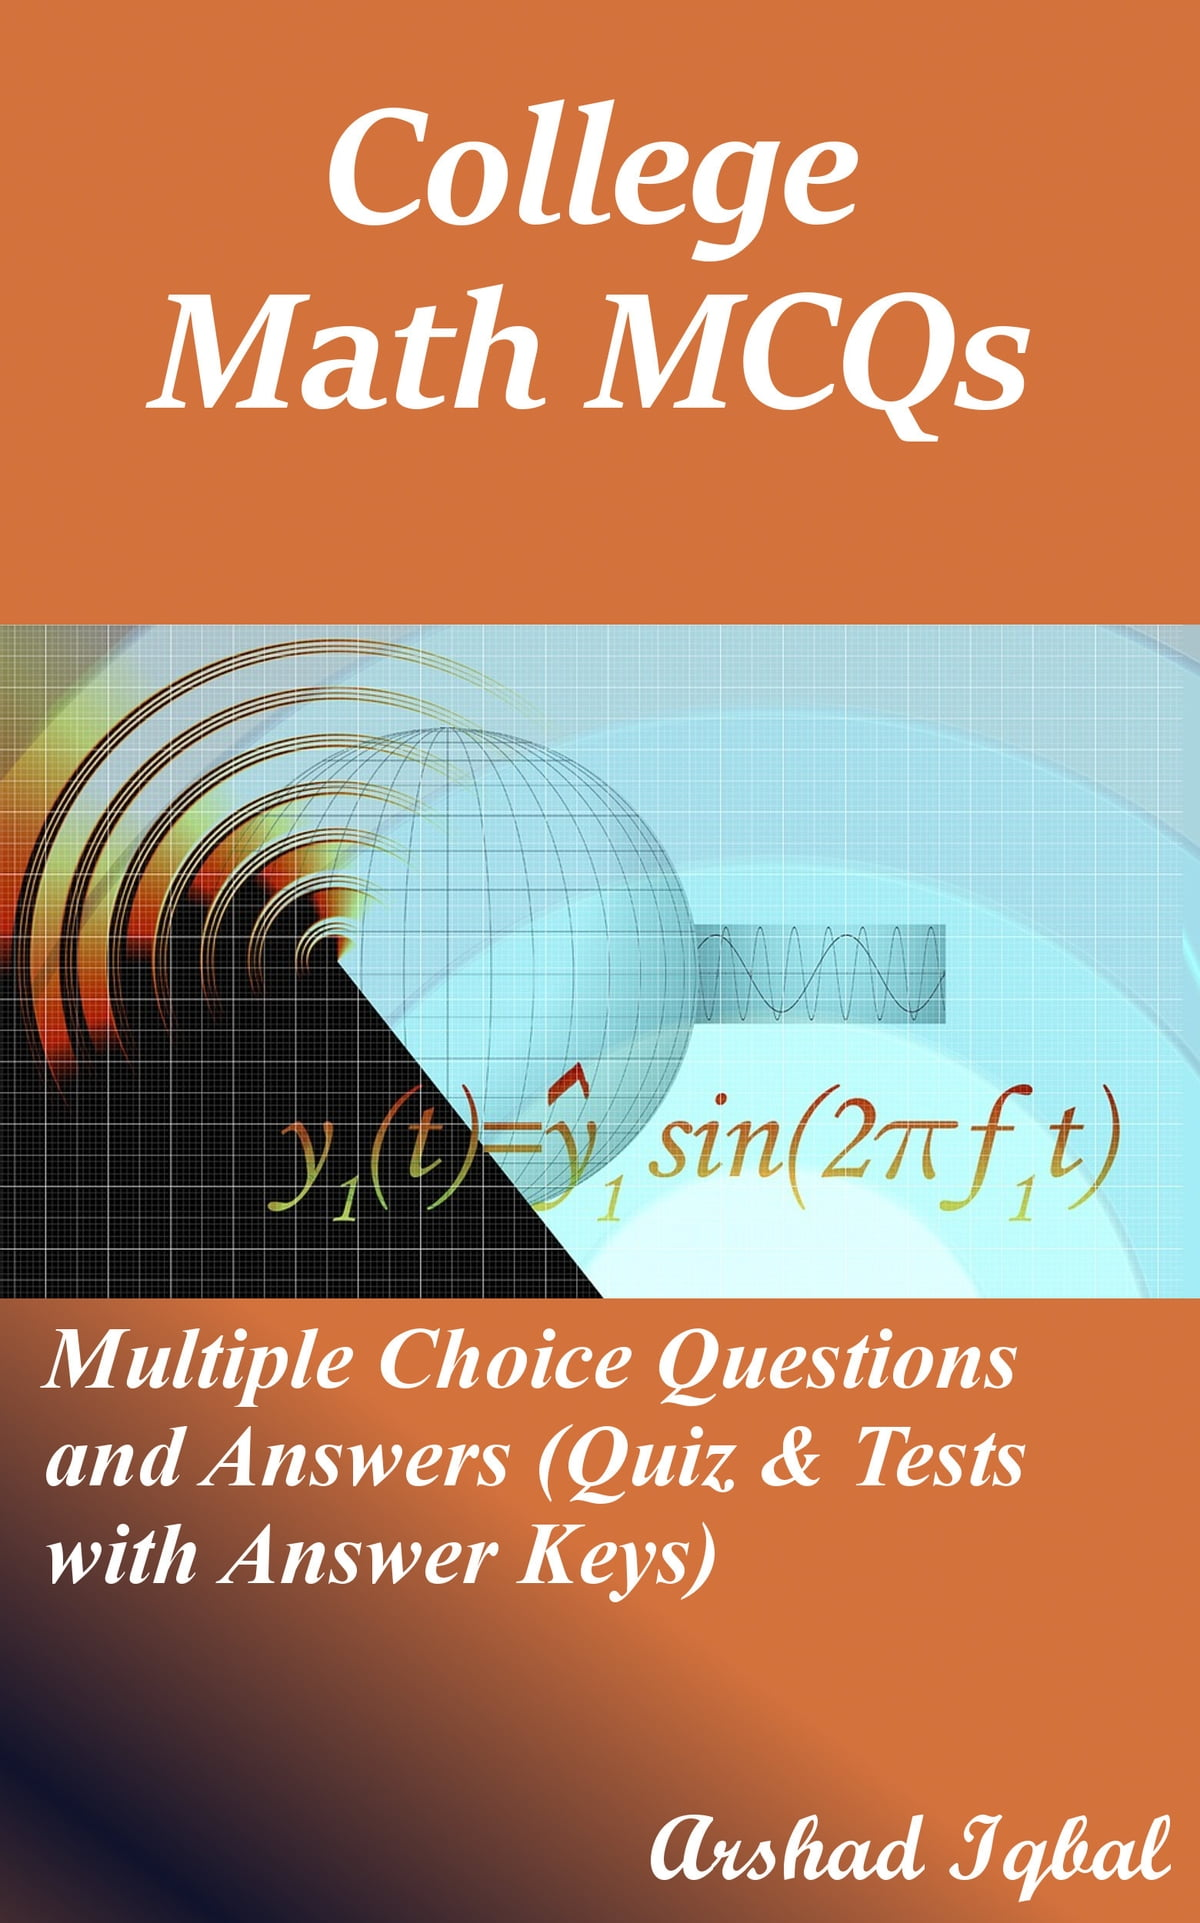 College Math MCQs: Multiple Choice Questions and Answers (Quiz & Tests with  Answer Keys) ebook by Arshad Iqbal - Rakuten Kobo